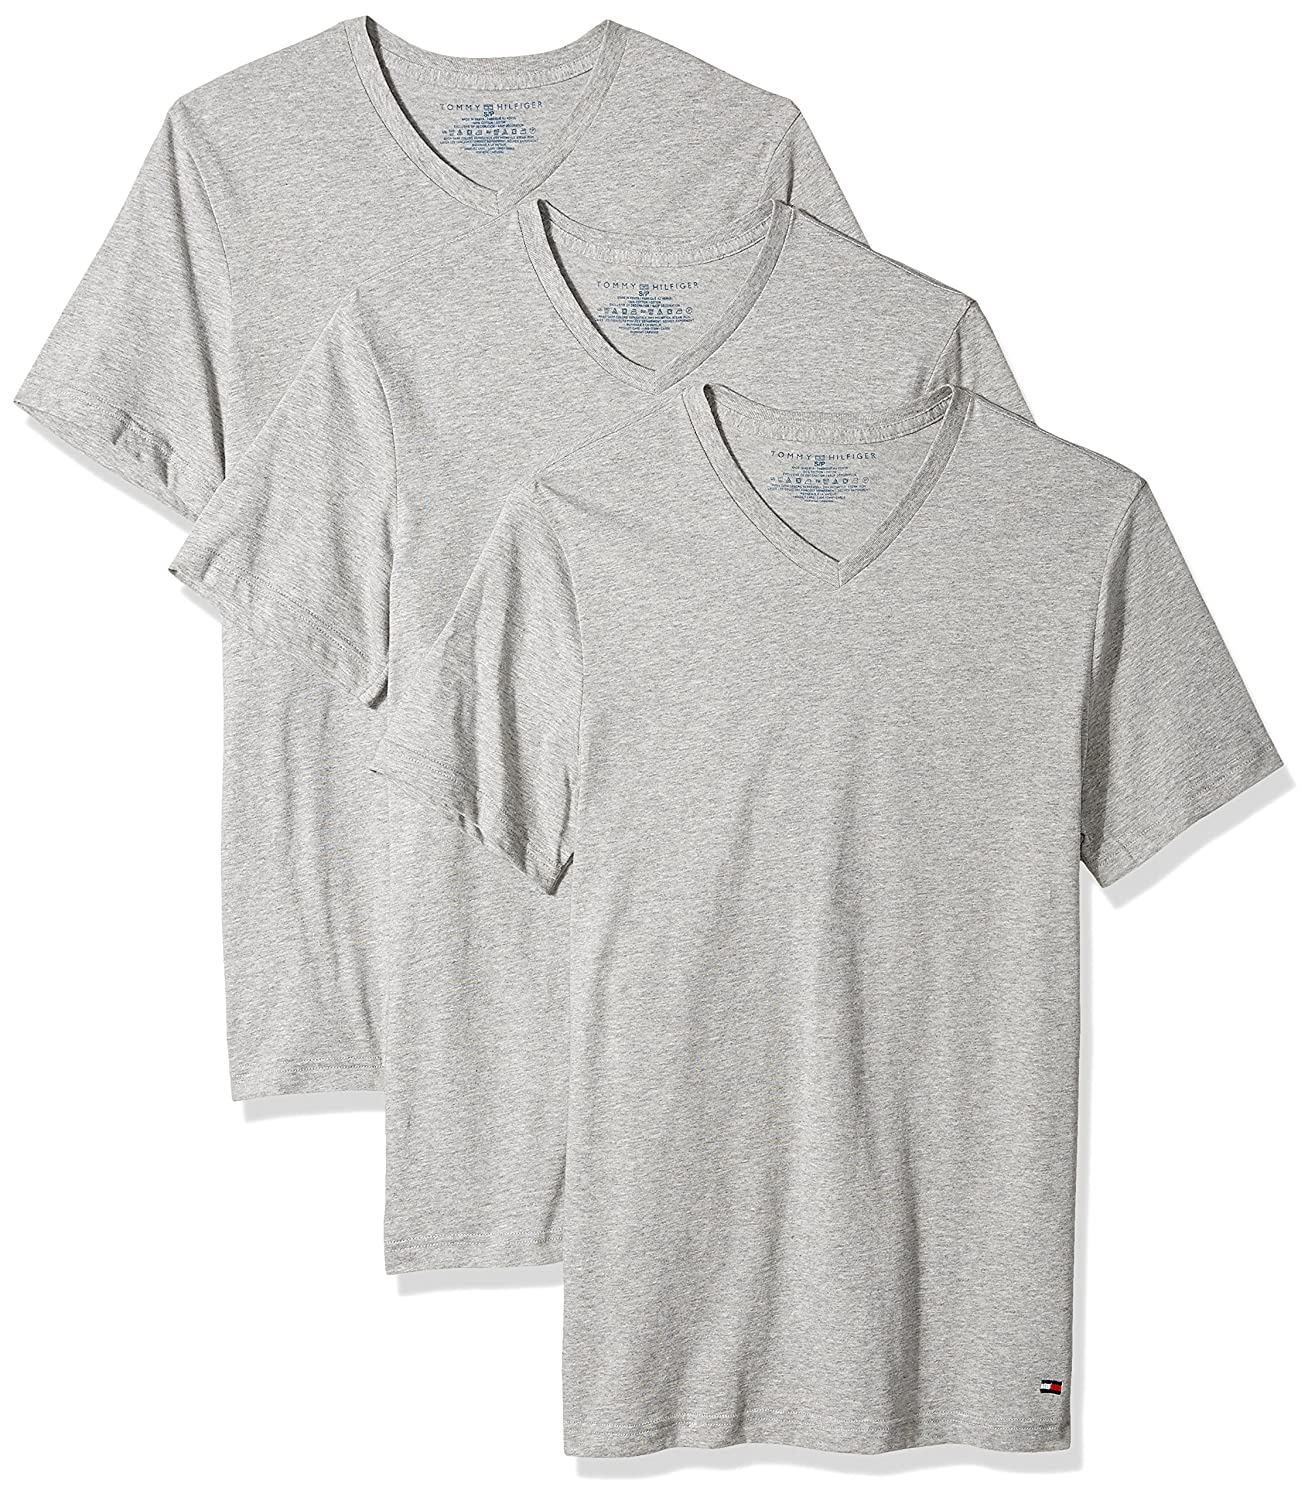 c3d5c38d7 Tommy Hilfiger Men's 3-Pack Cotton V-Neck T-Shirt: Amazon.ca: Clothing &  Accessories